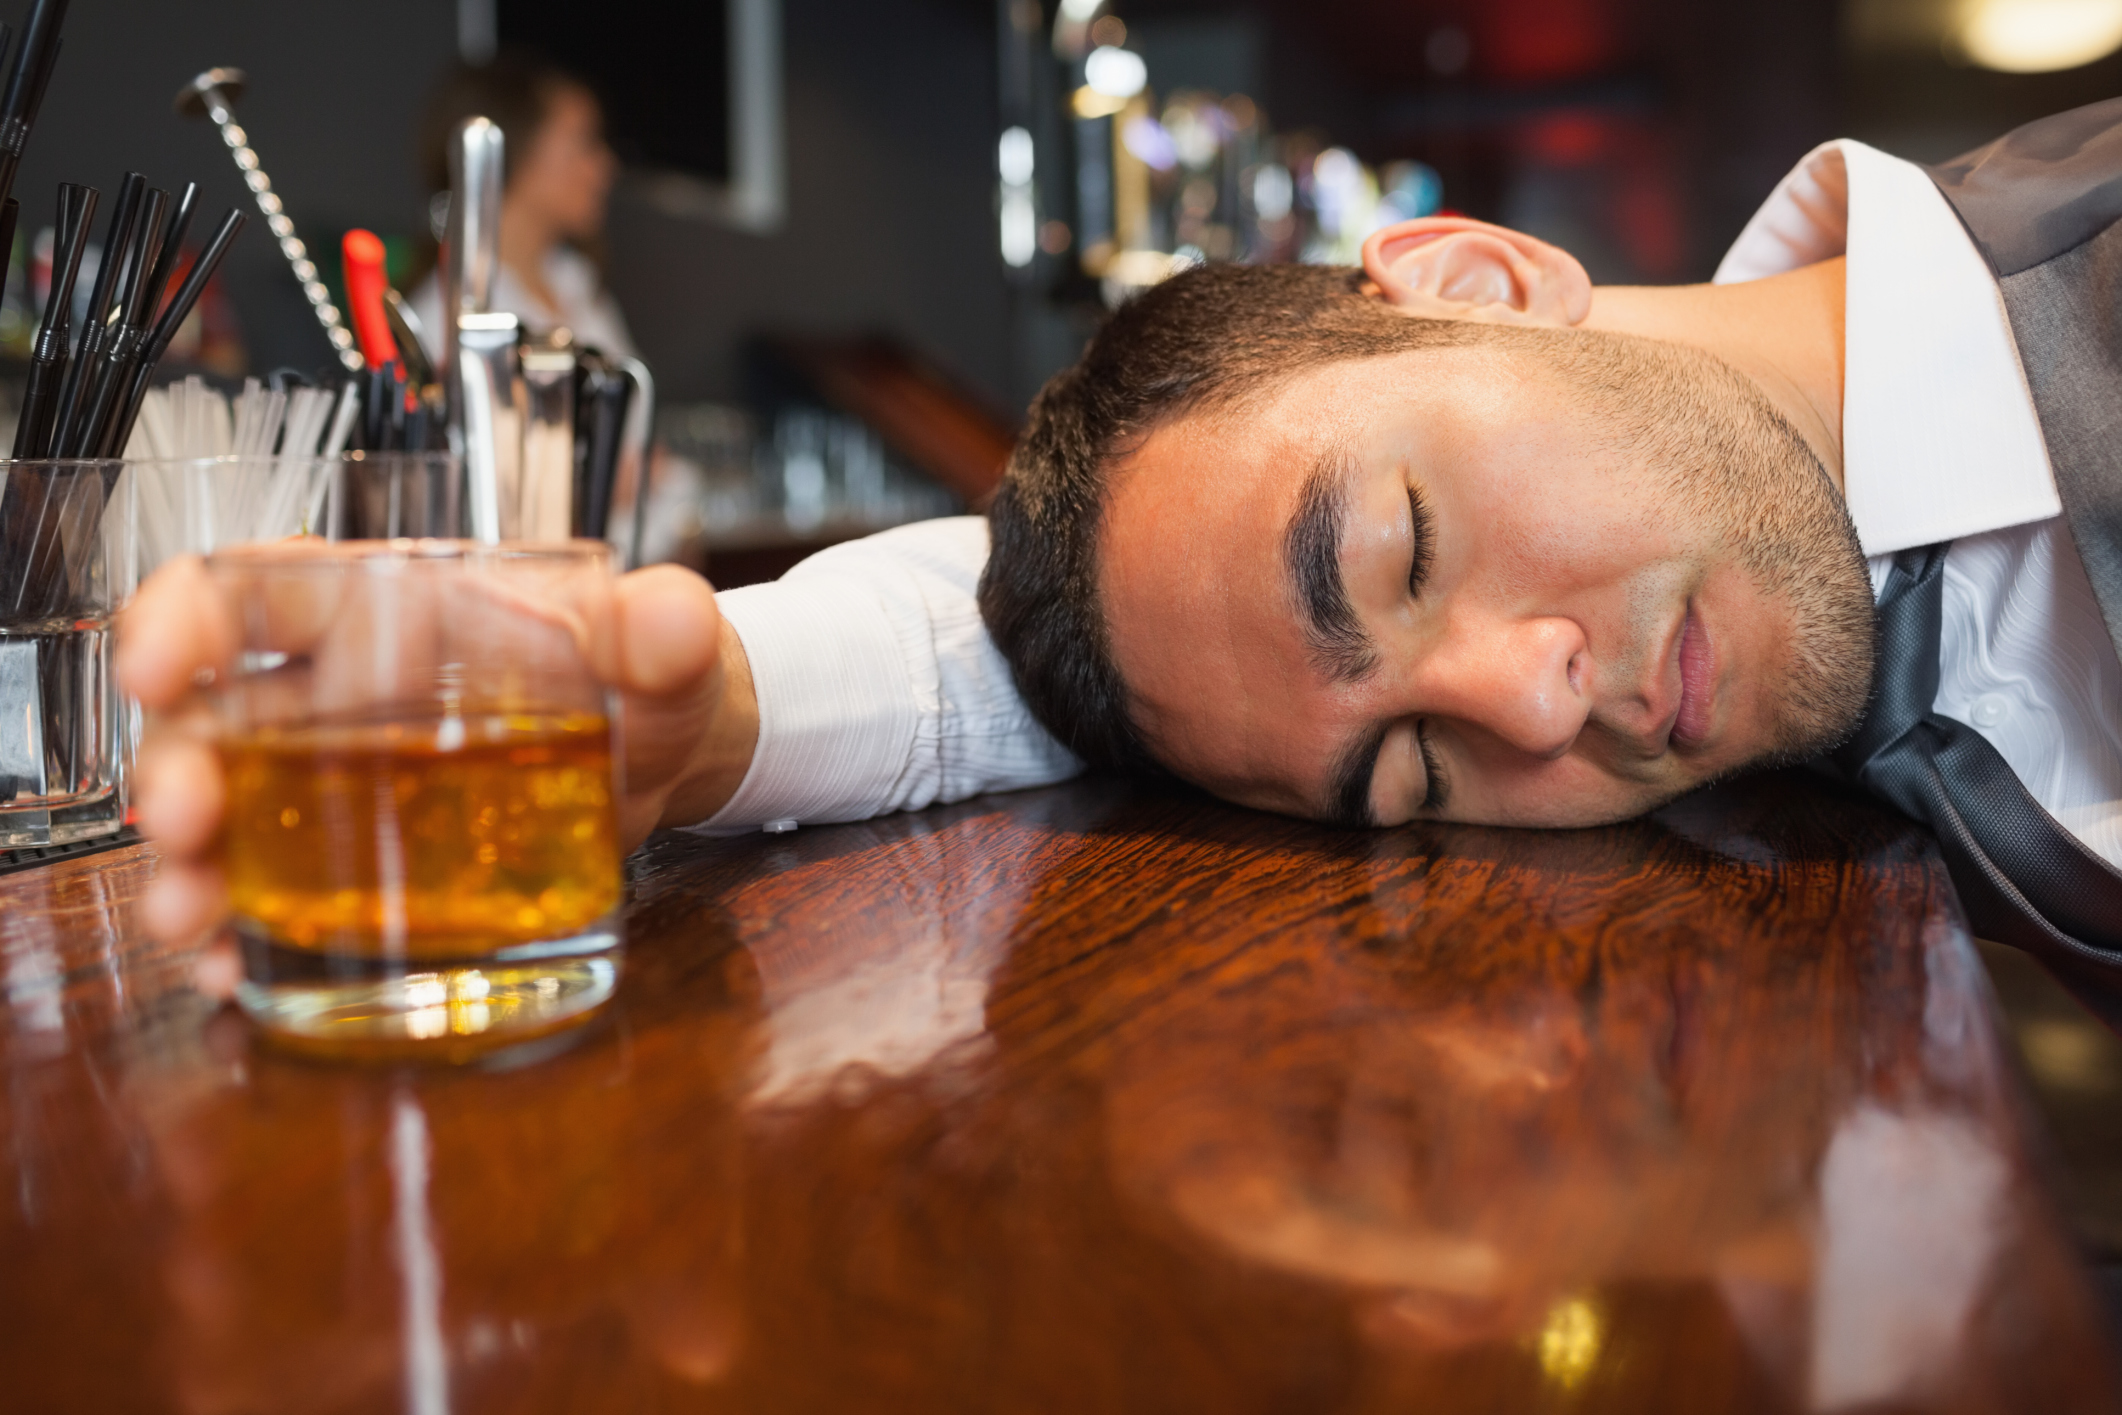 How Does Alcohol Make You Drunk? | HowStuffWorks